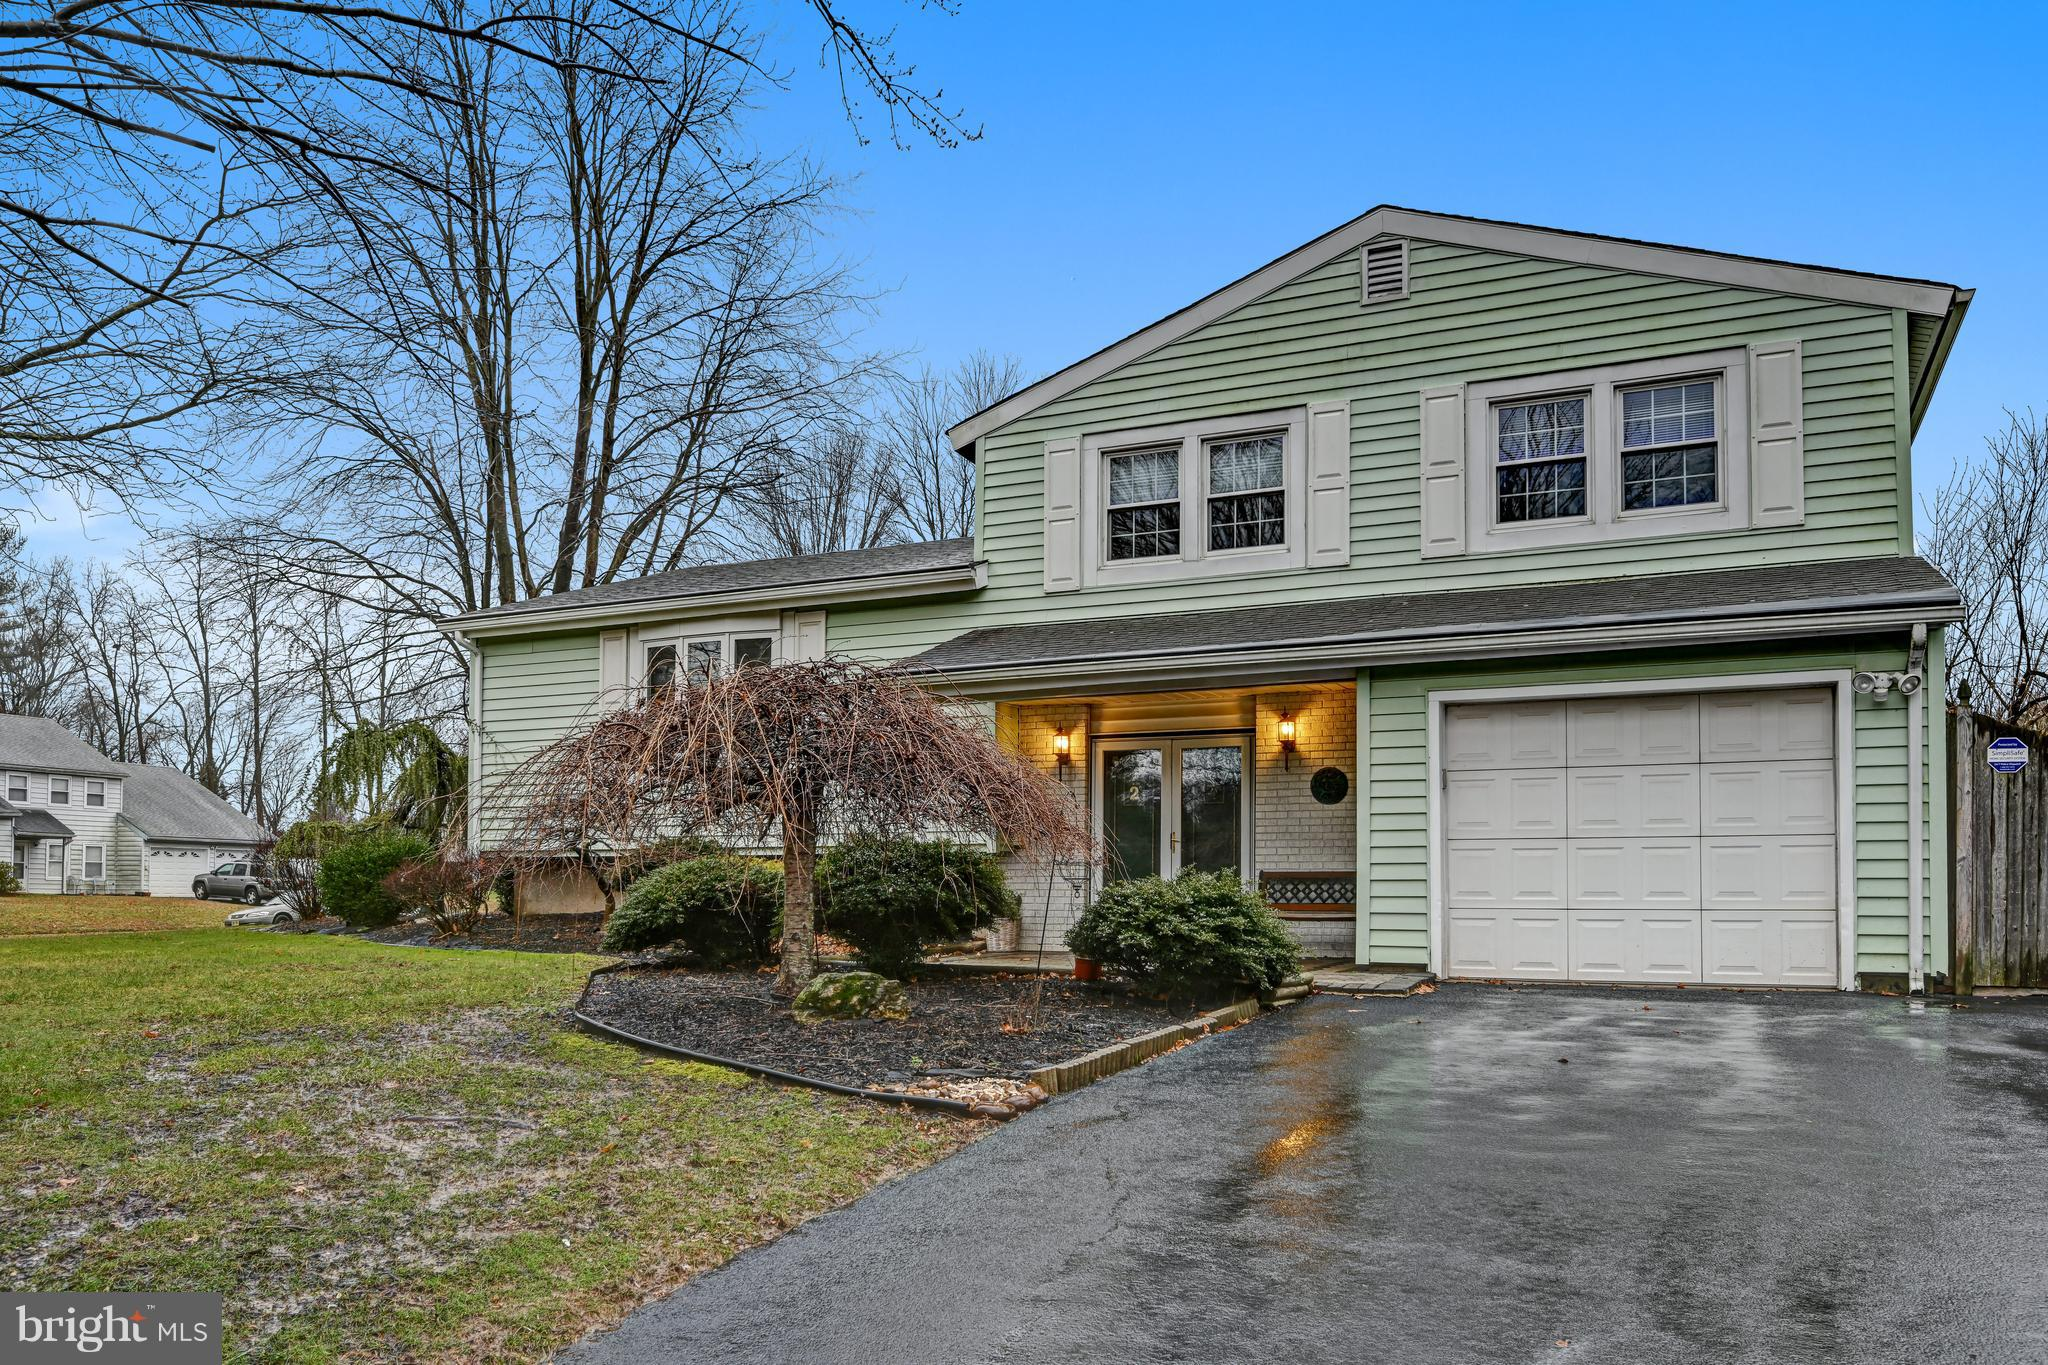 2 MARVIN ROAD, MONMOUTH JUNCTION, NJ 08852